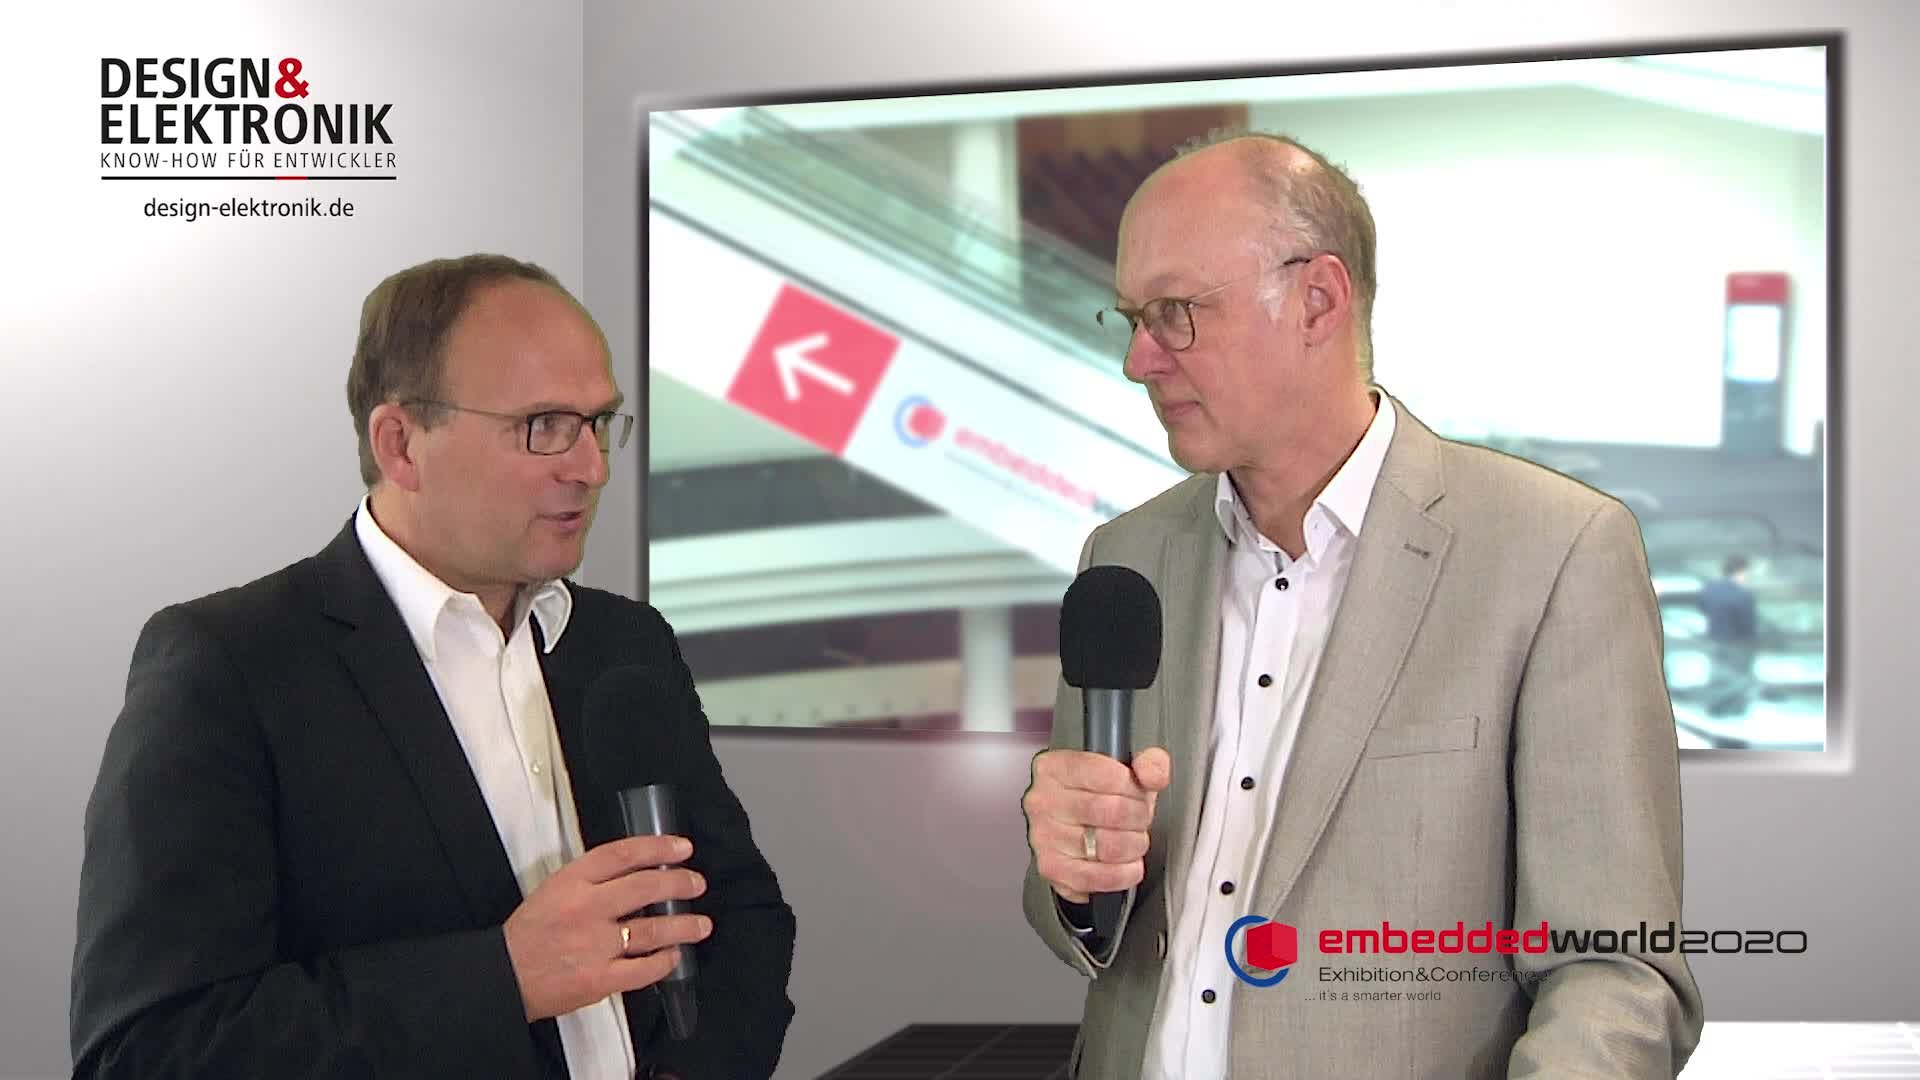 embedded world Conference 2020: KI und Embedded Vision